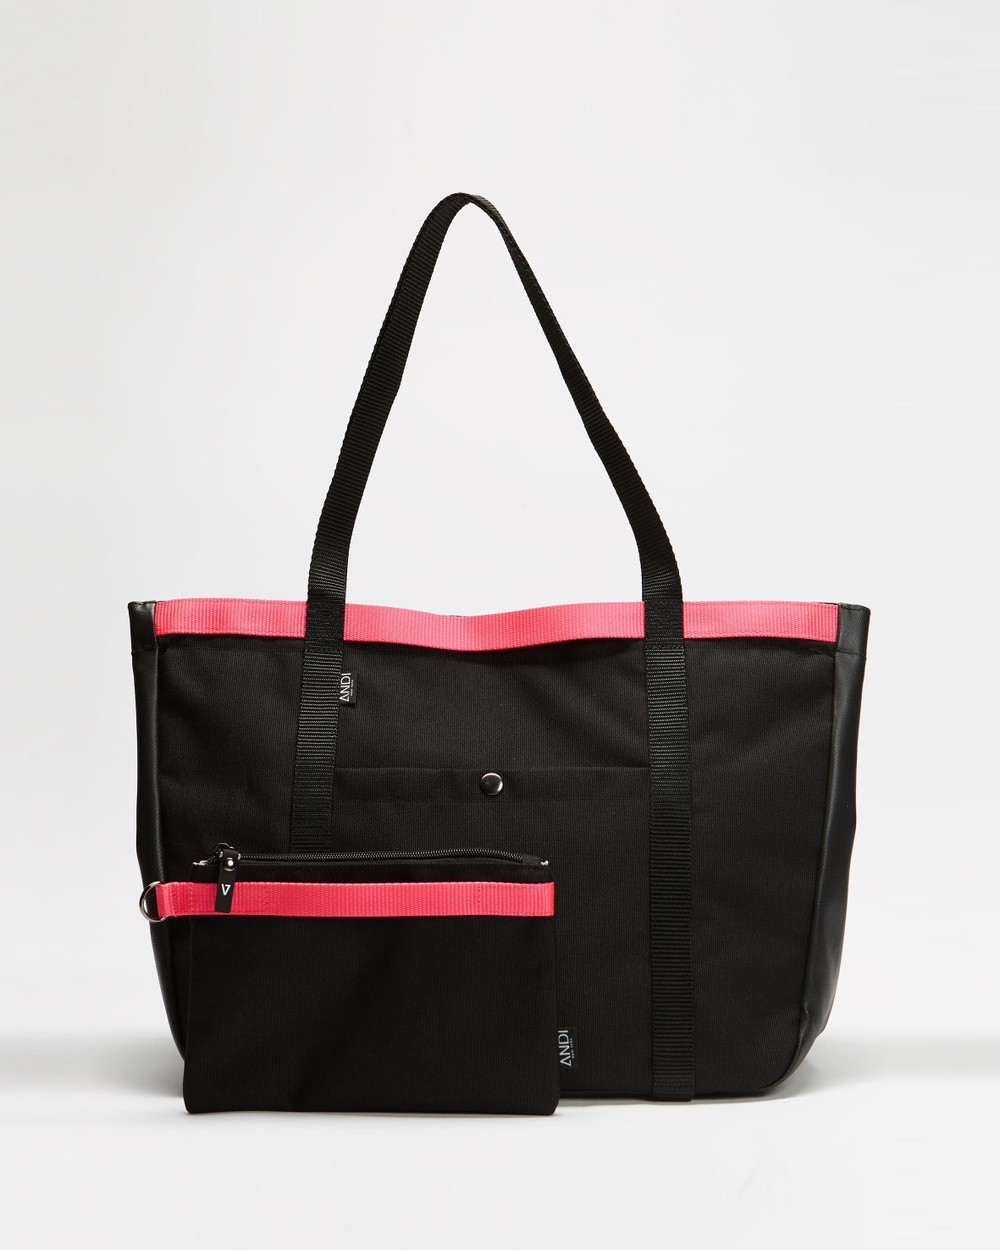 ANDI New York The Summer Tote Beach Bags Black & Pink